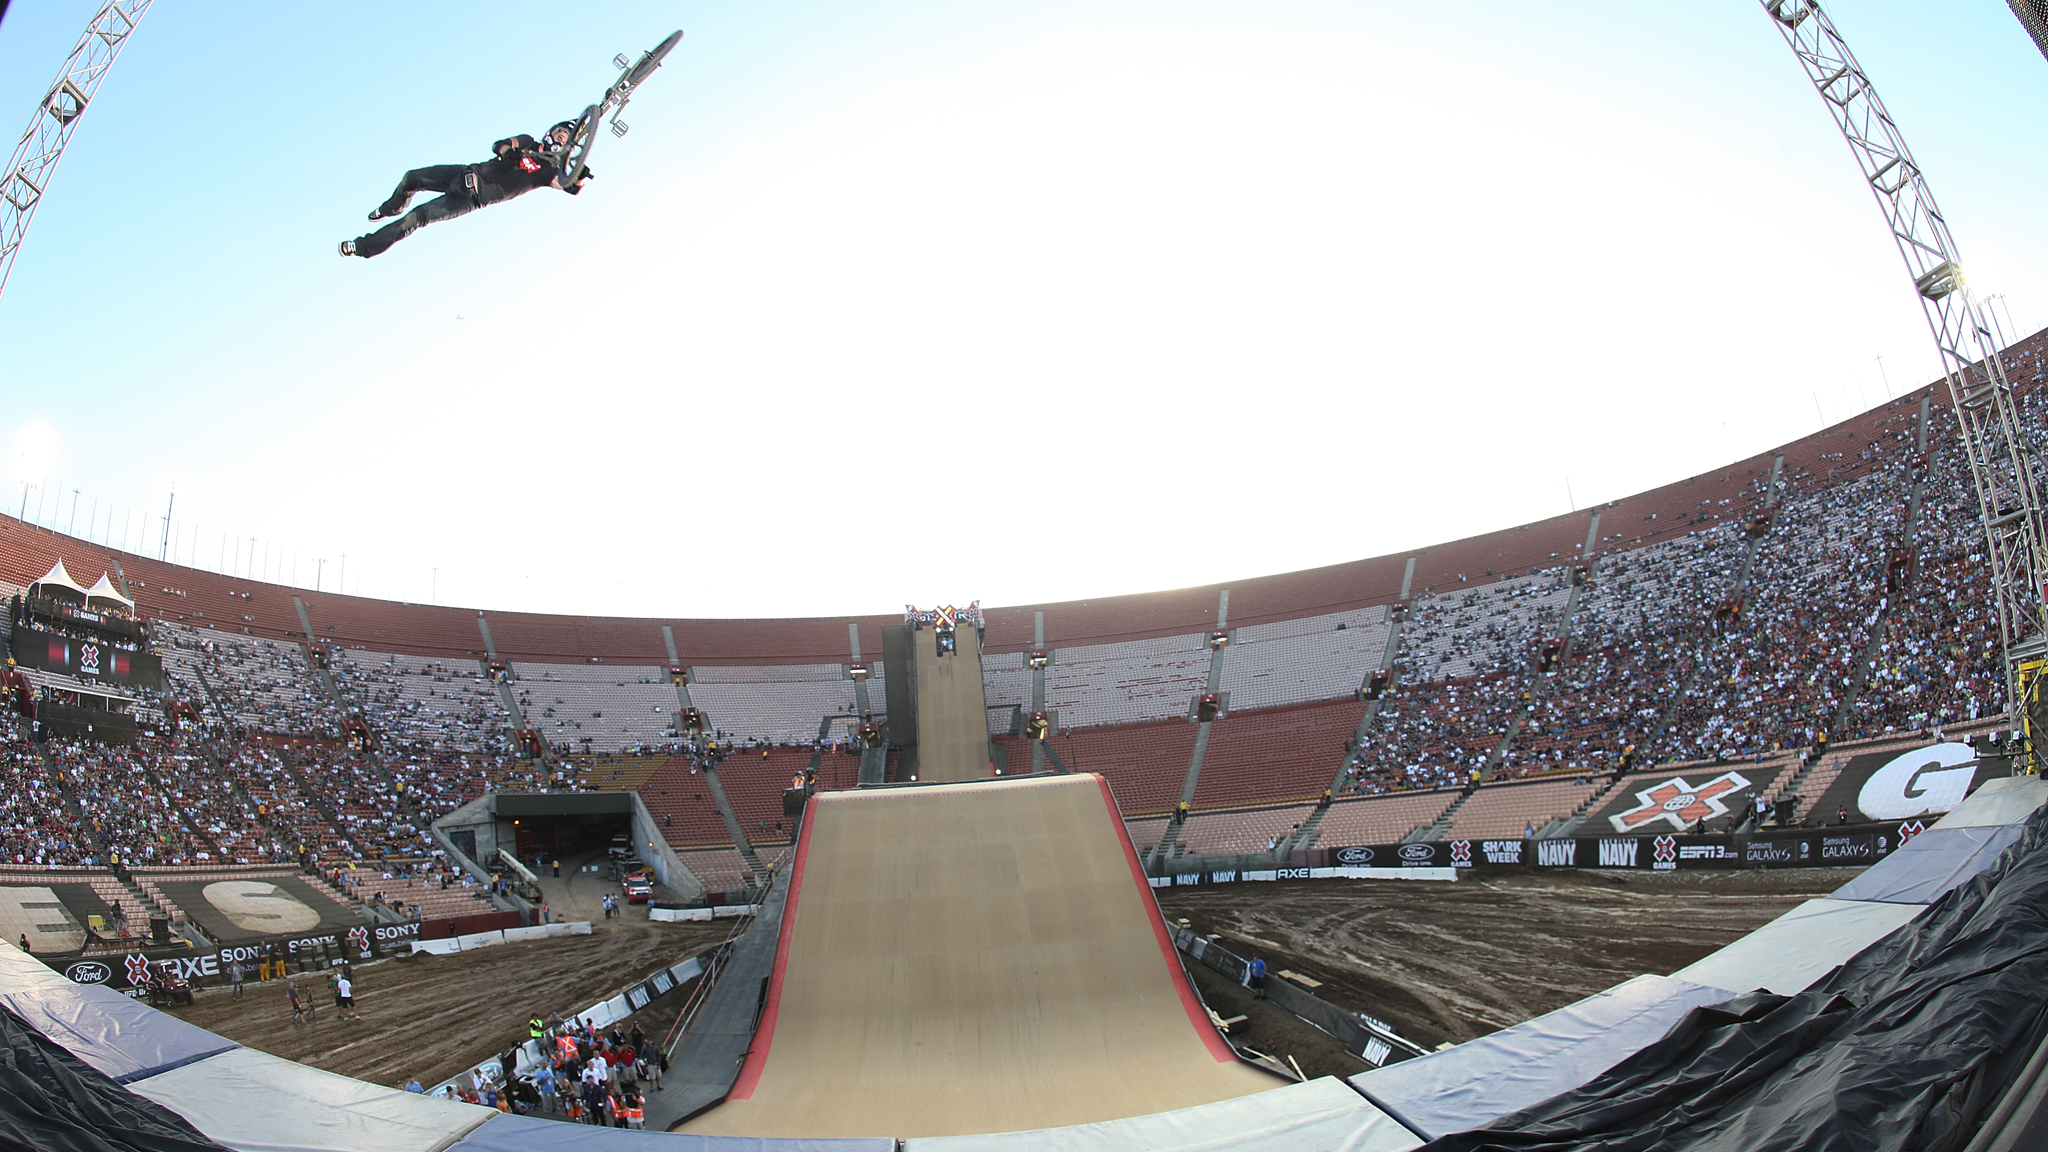 BMX Big Air competitor Morgan Wade, double tailwhip air at X Games 16 in 2010.